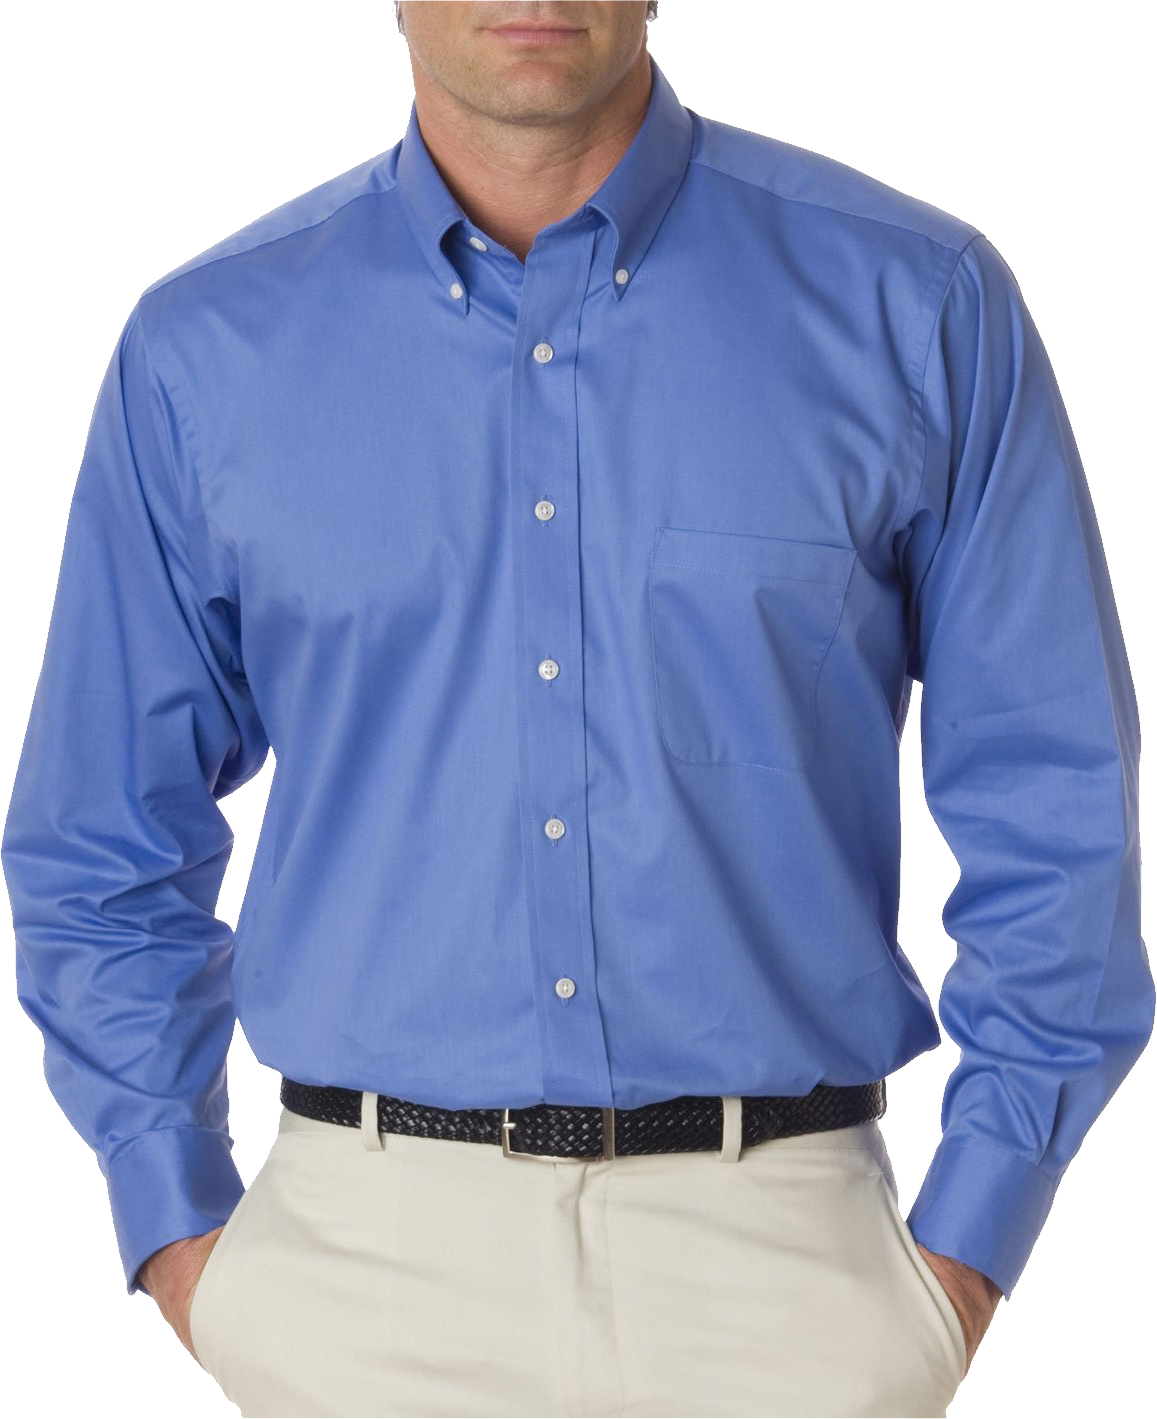 Dress shirt png images free download for Where to buy a dress shirt